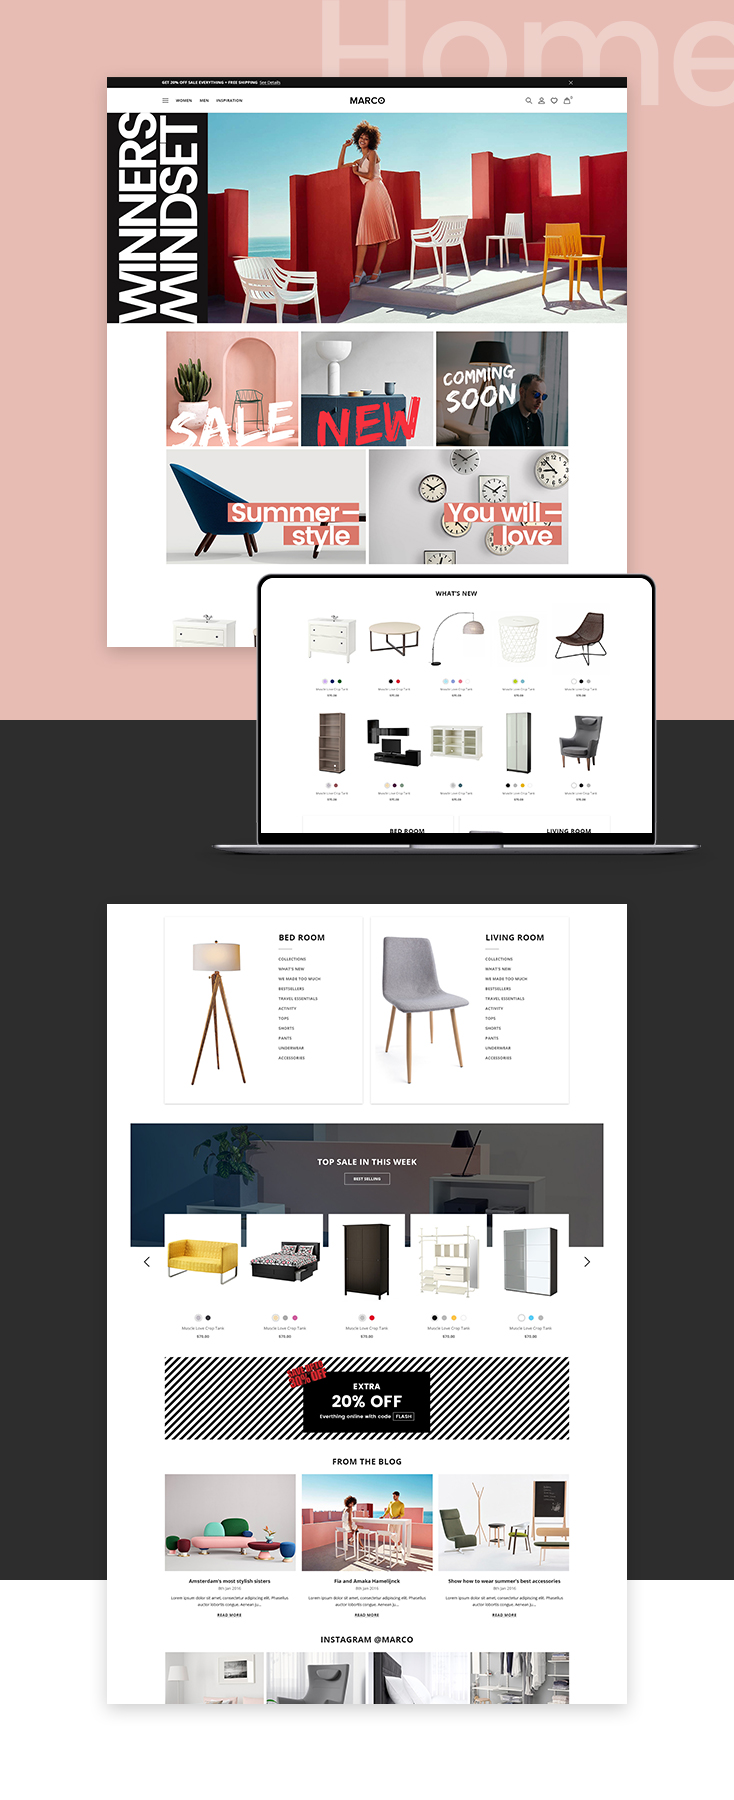 Marco Furniture Shopify theme design